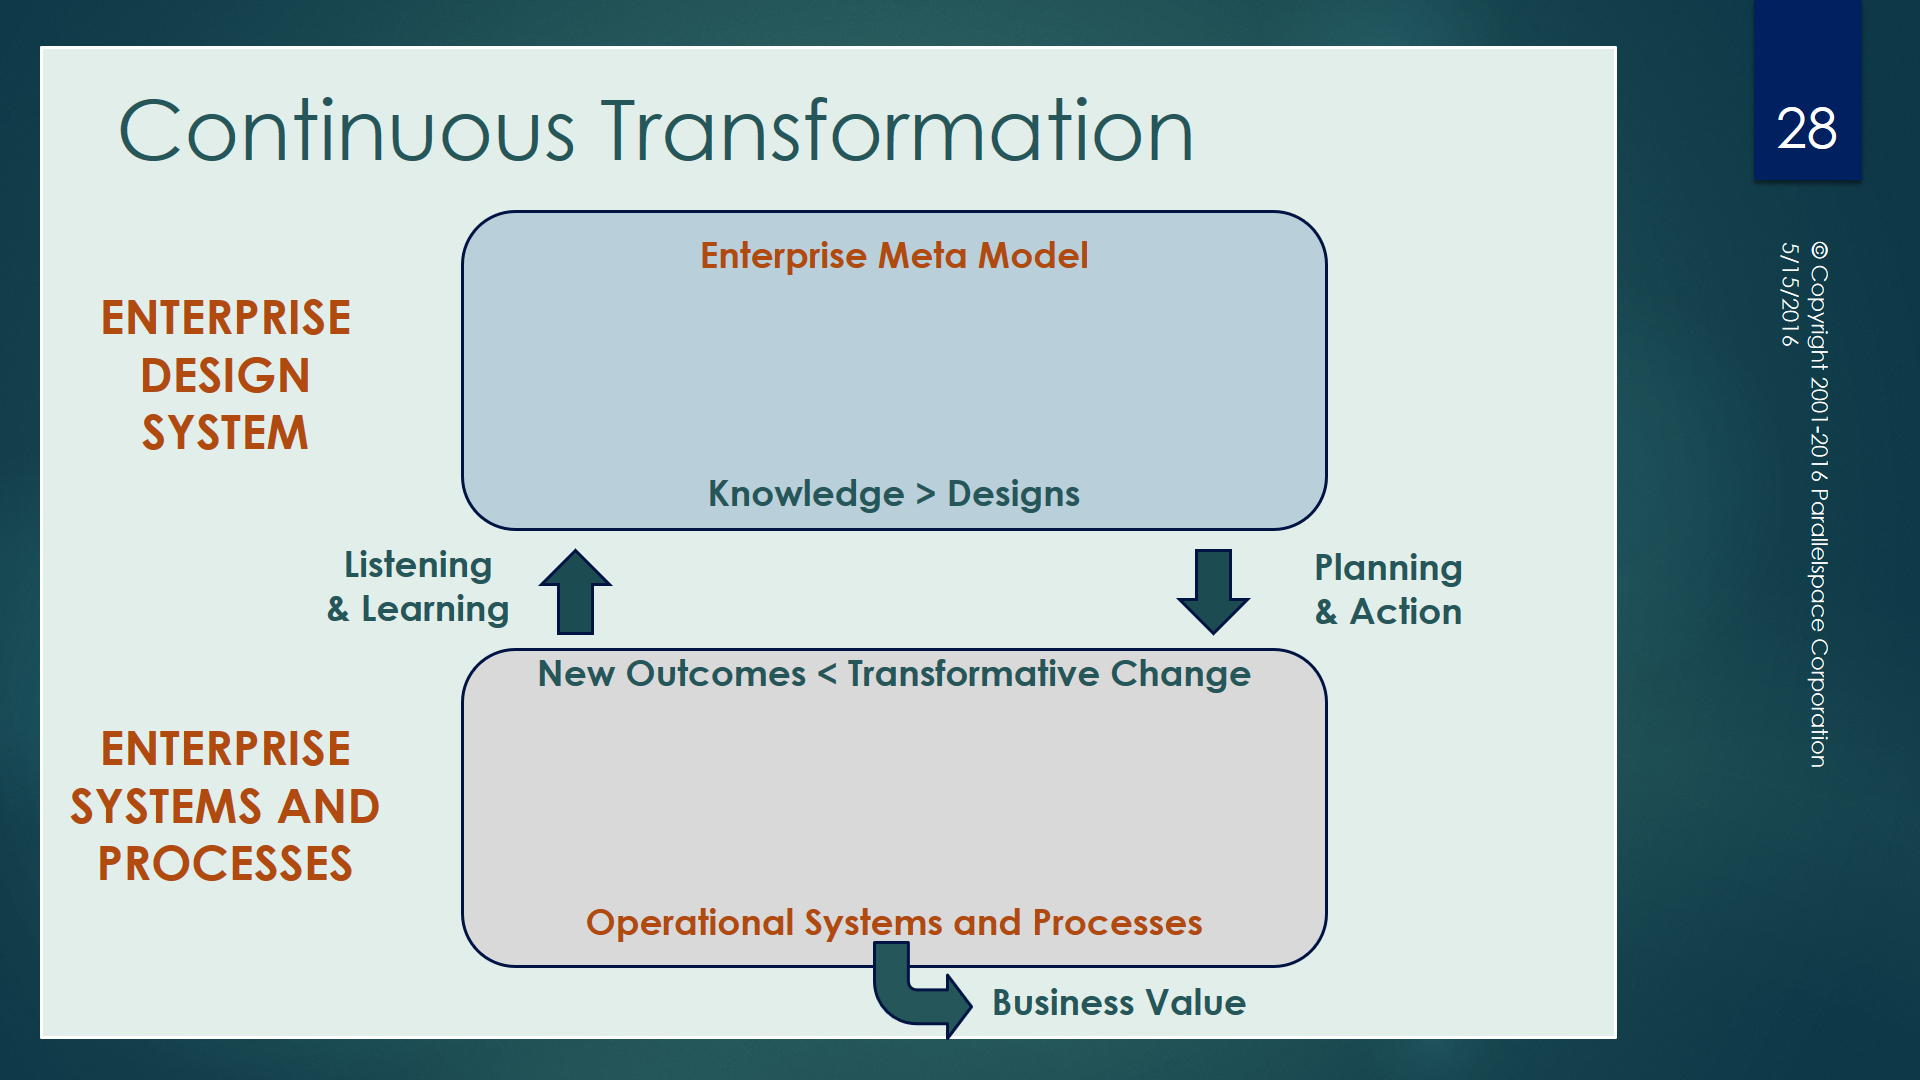 organizational assessment models for enterprise transformation Organizational transformation the pdf -  organizational assessment models for enterprise transformation l nathan perkins lean advancement initiative massachusetts.